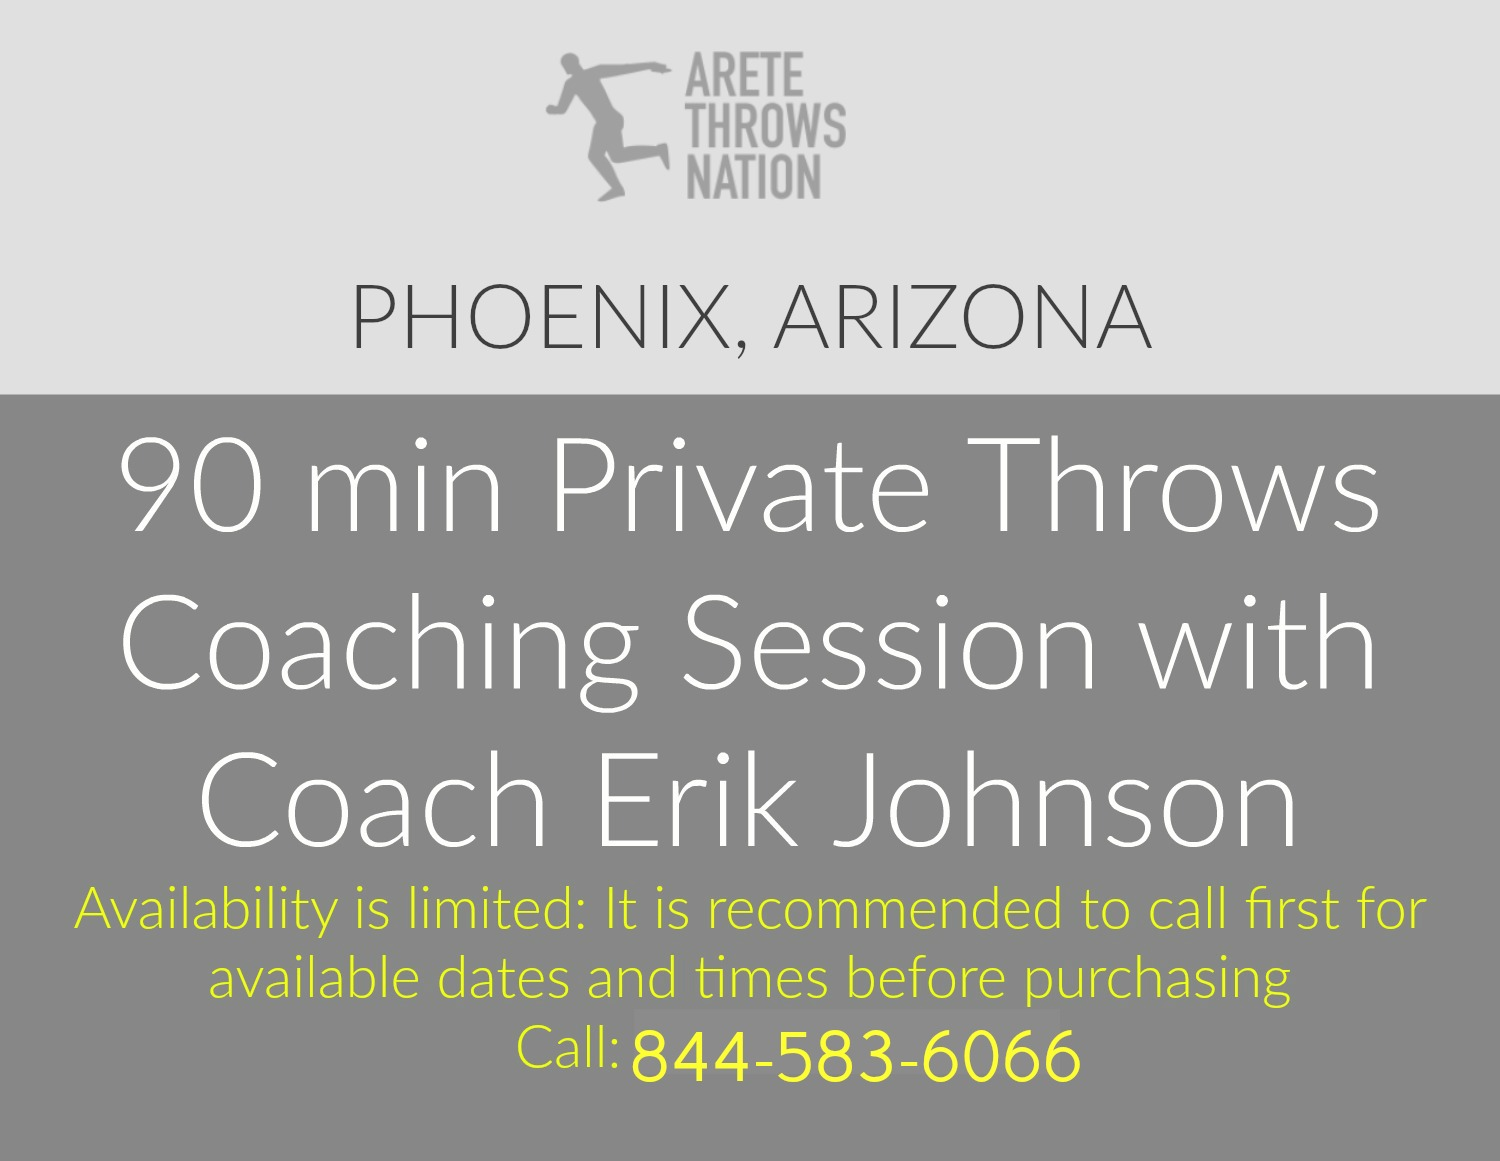 90 min throws coaching phoenix arizona